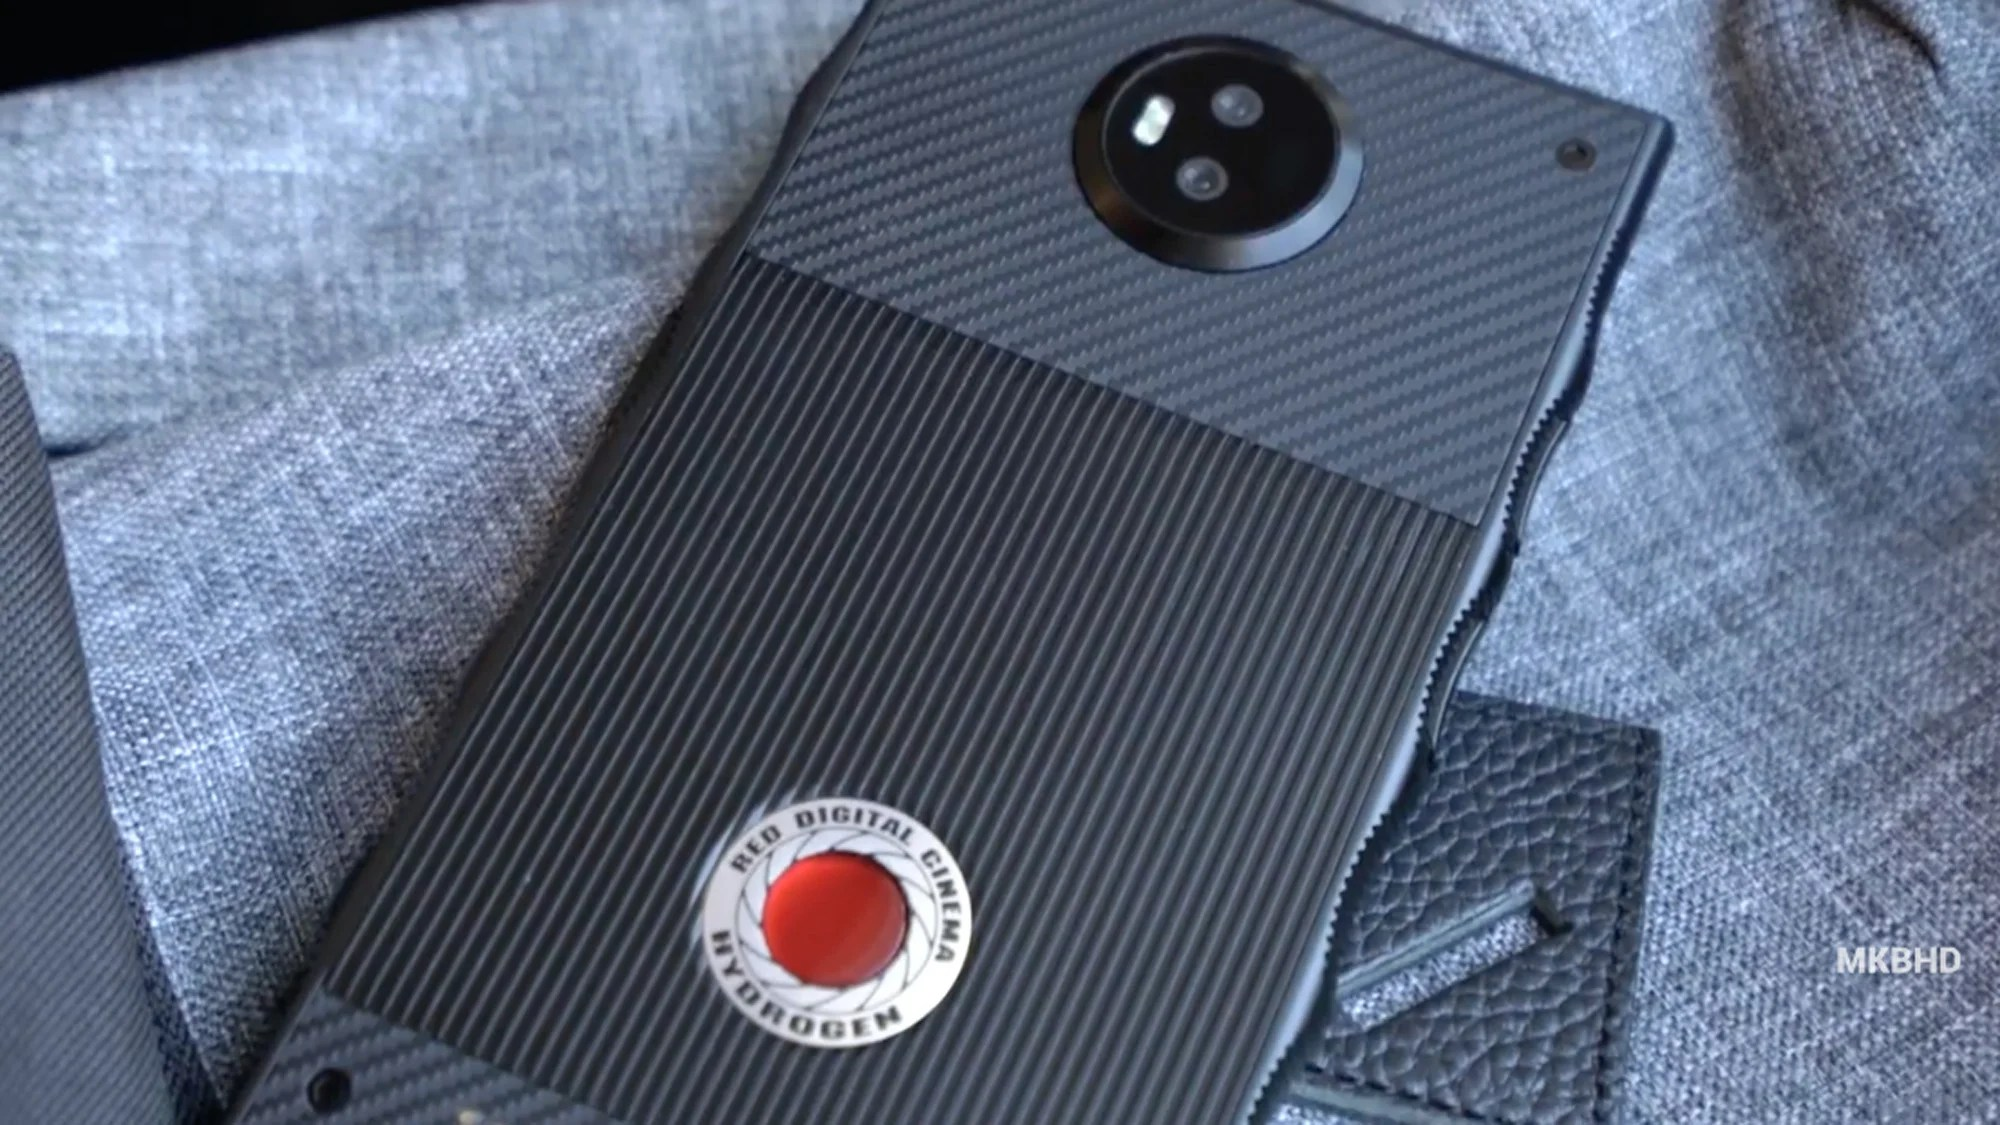 The Bizarre RED Hydrogen One Phone Makes Its Big Screen